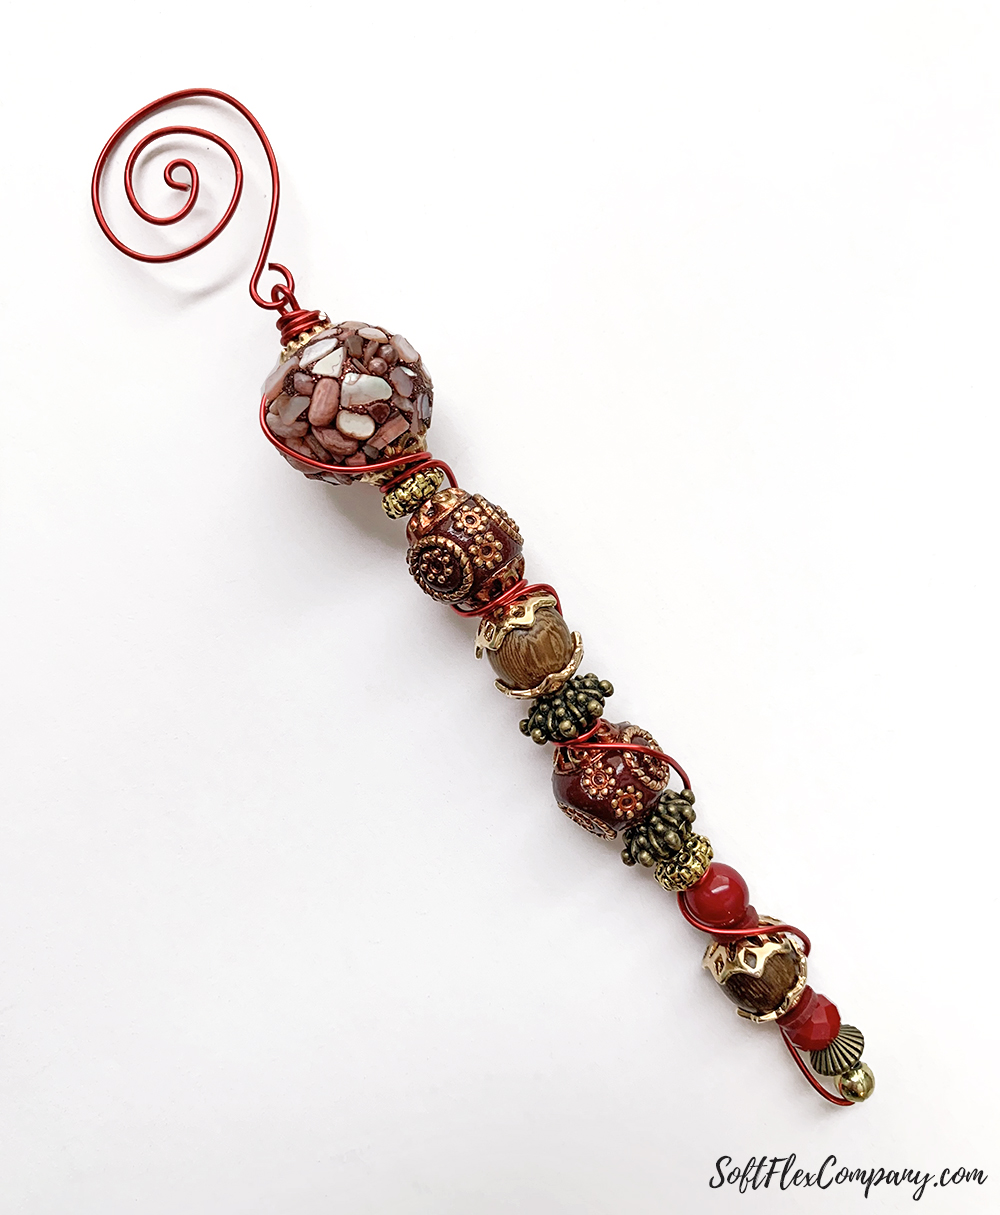 Craft Wire Swirl Ornament Hanger & Icicle Ornament by Kristen Fagan